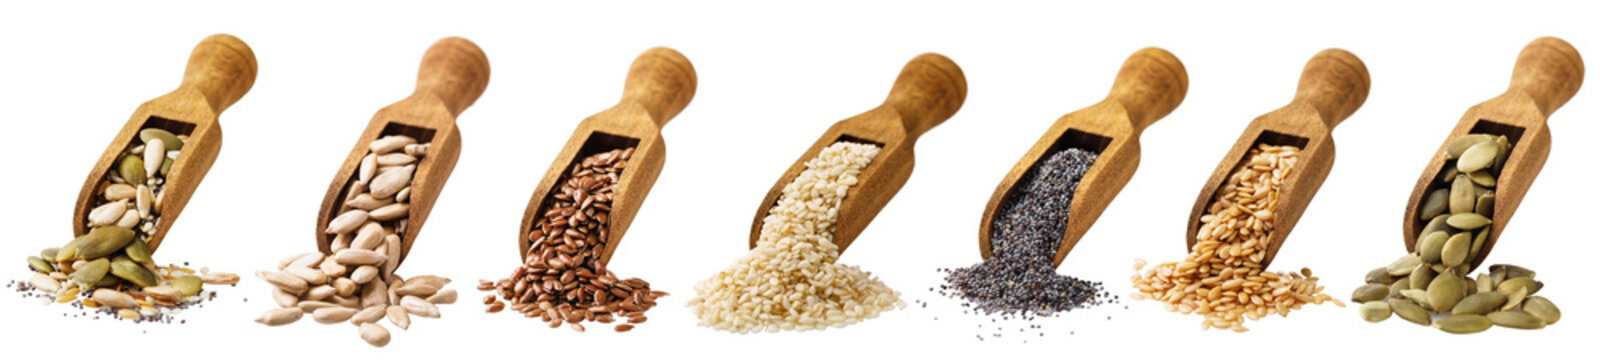 Scoop with seeds of pumpkin, the flax, sesame of sunflower and poppy isolated on a white background. Set of ingredients